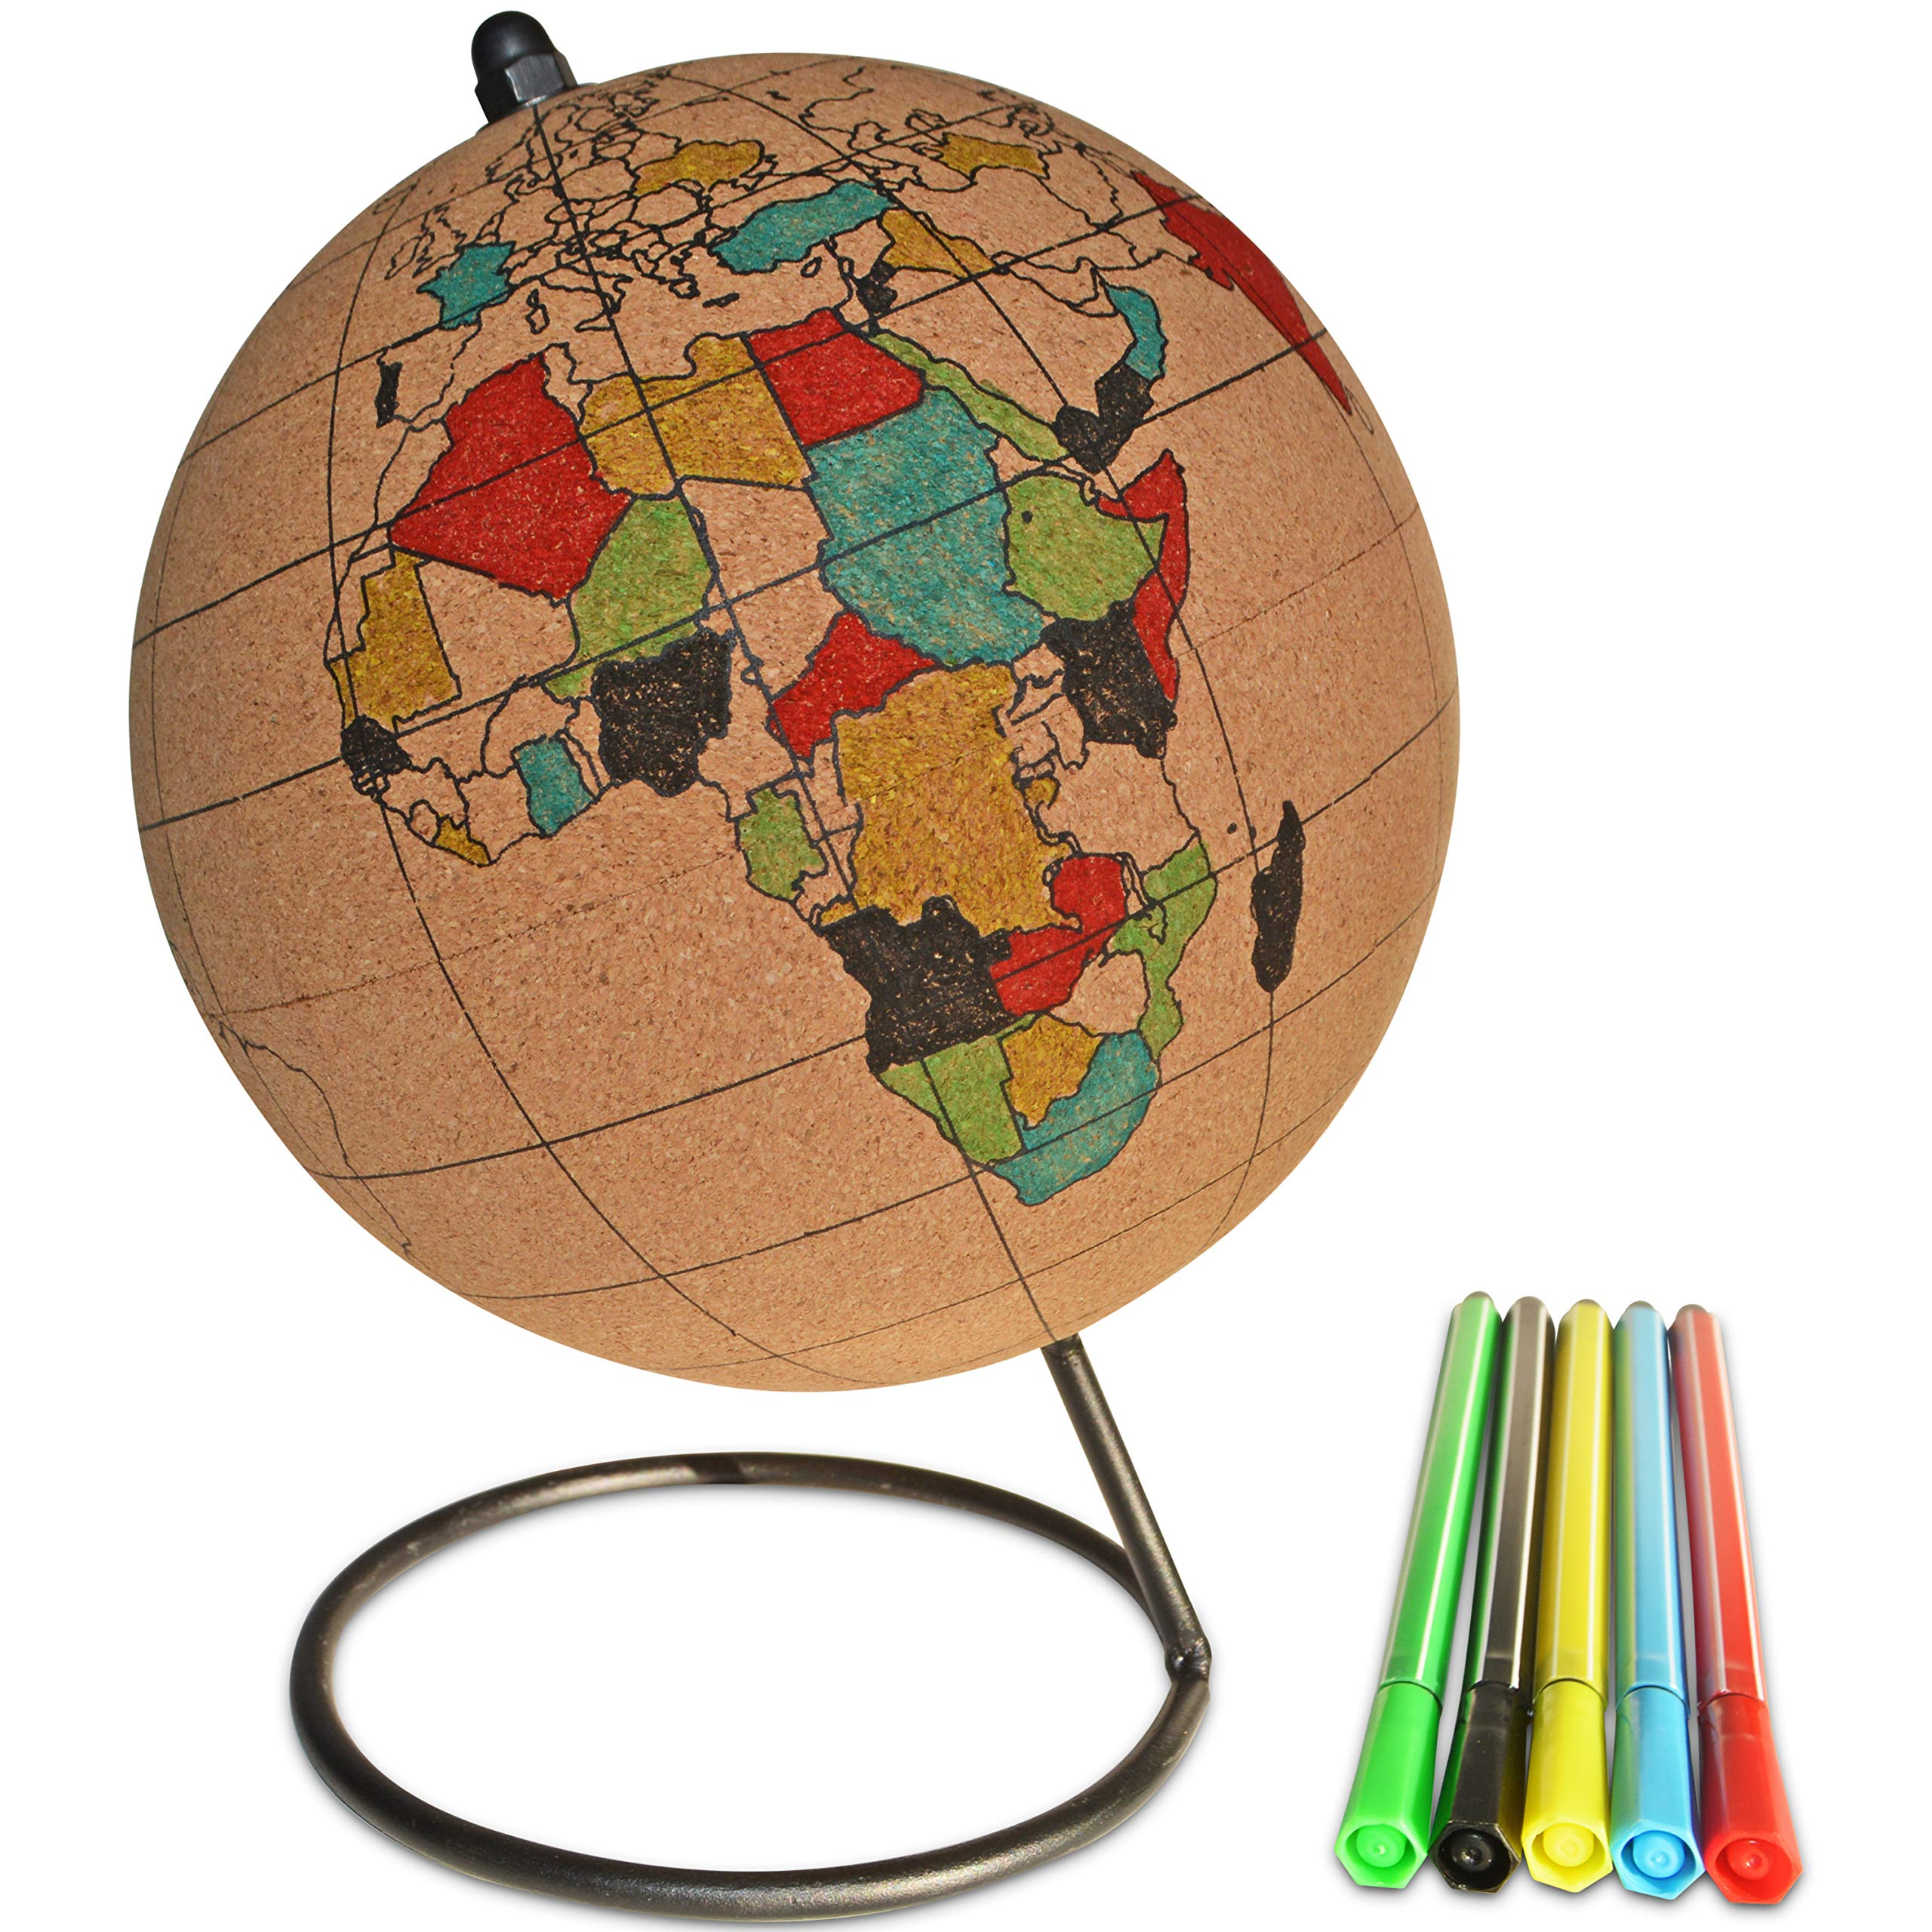 Globe Trekkers - Color-in Cork Globe with 5 Different Colored Markers & Durable Steel Base | Great for Mapping Travels & Educational Purposes | Does Not Have Plastic Strip Like Most